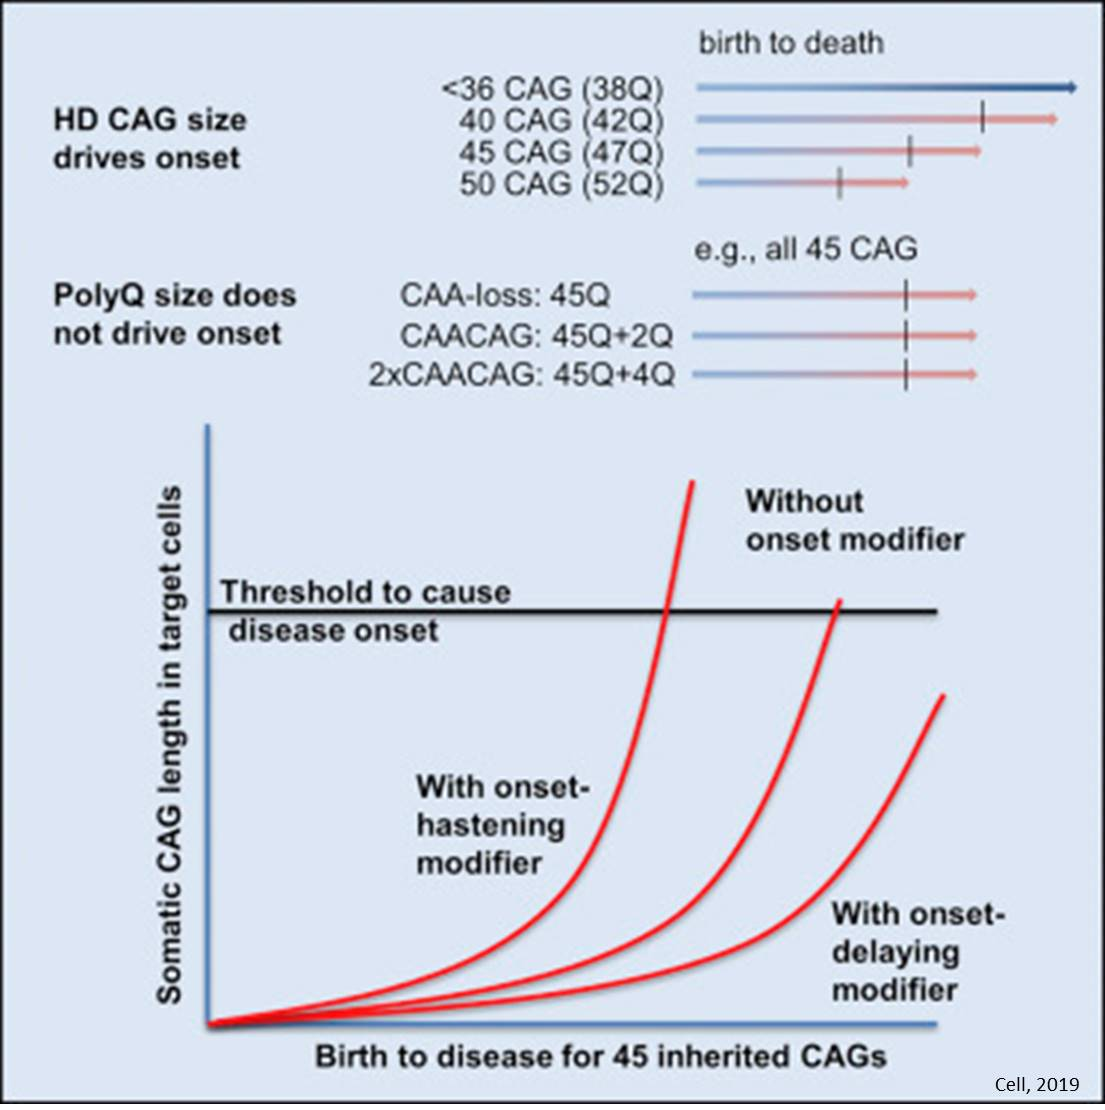 The theory about the timing of Huntington's disease onset challenged!